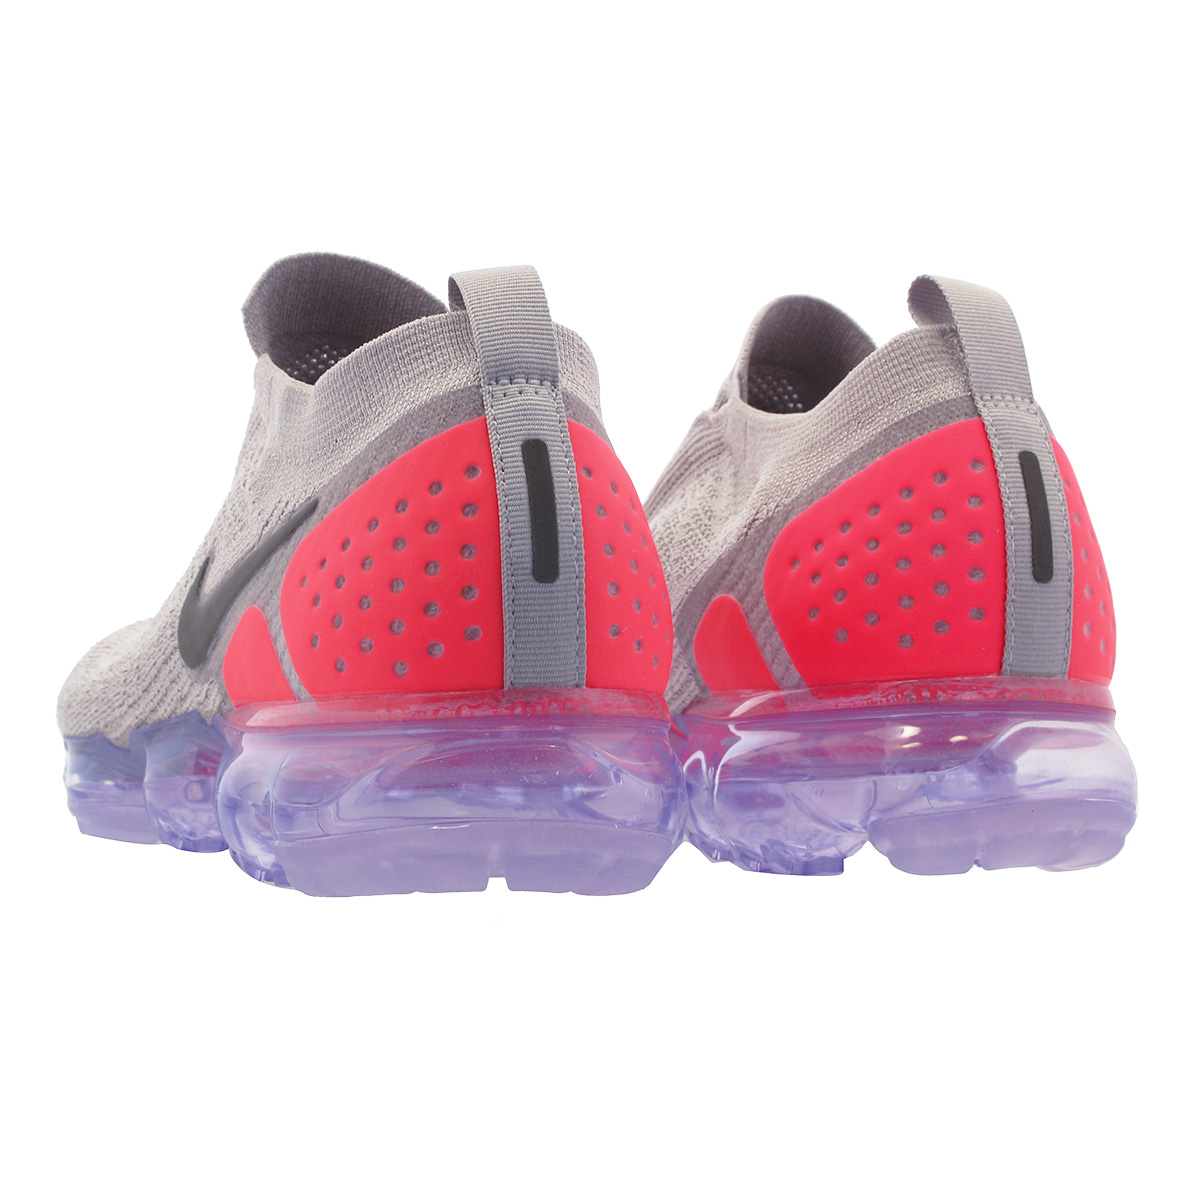 a24c1dc0ea6 NIKE AIR VAPORMAX MOC 2 Nike air vapor max fried food knit mock 2 MOON  PARTICLE INDIGO BURST ah7006-201